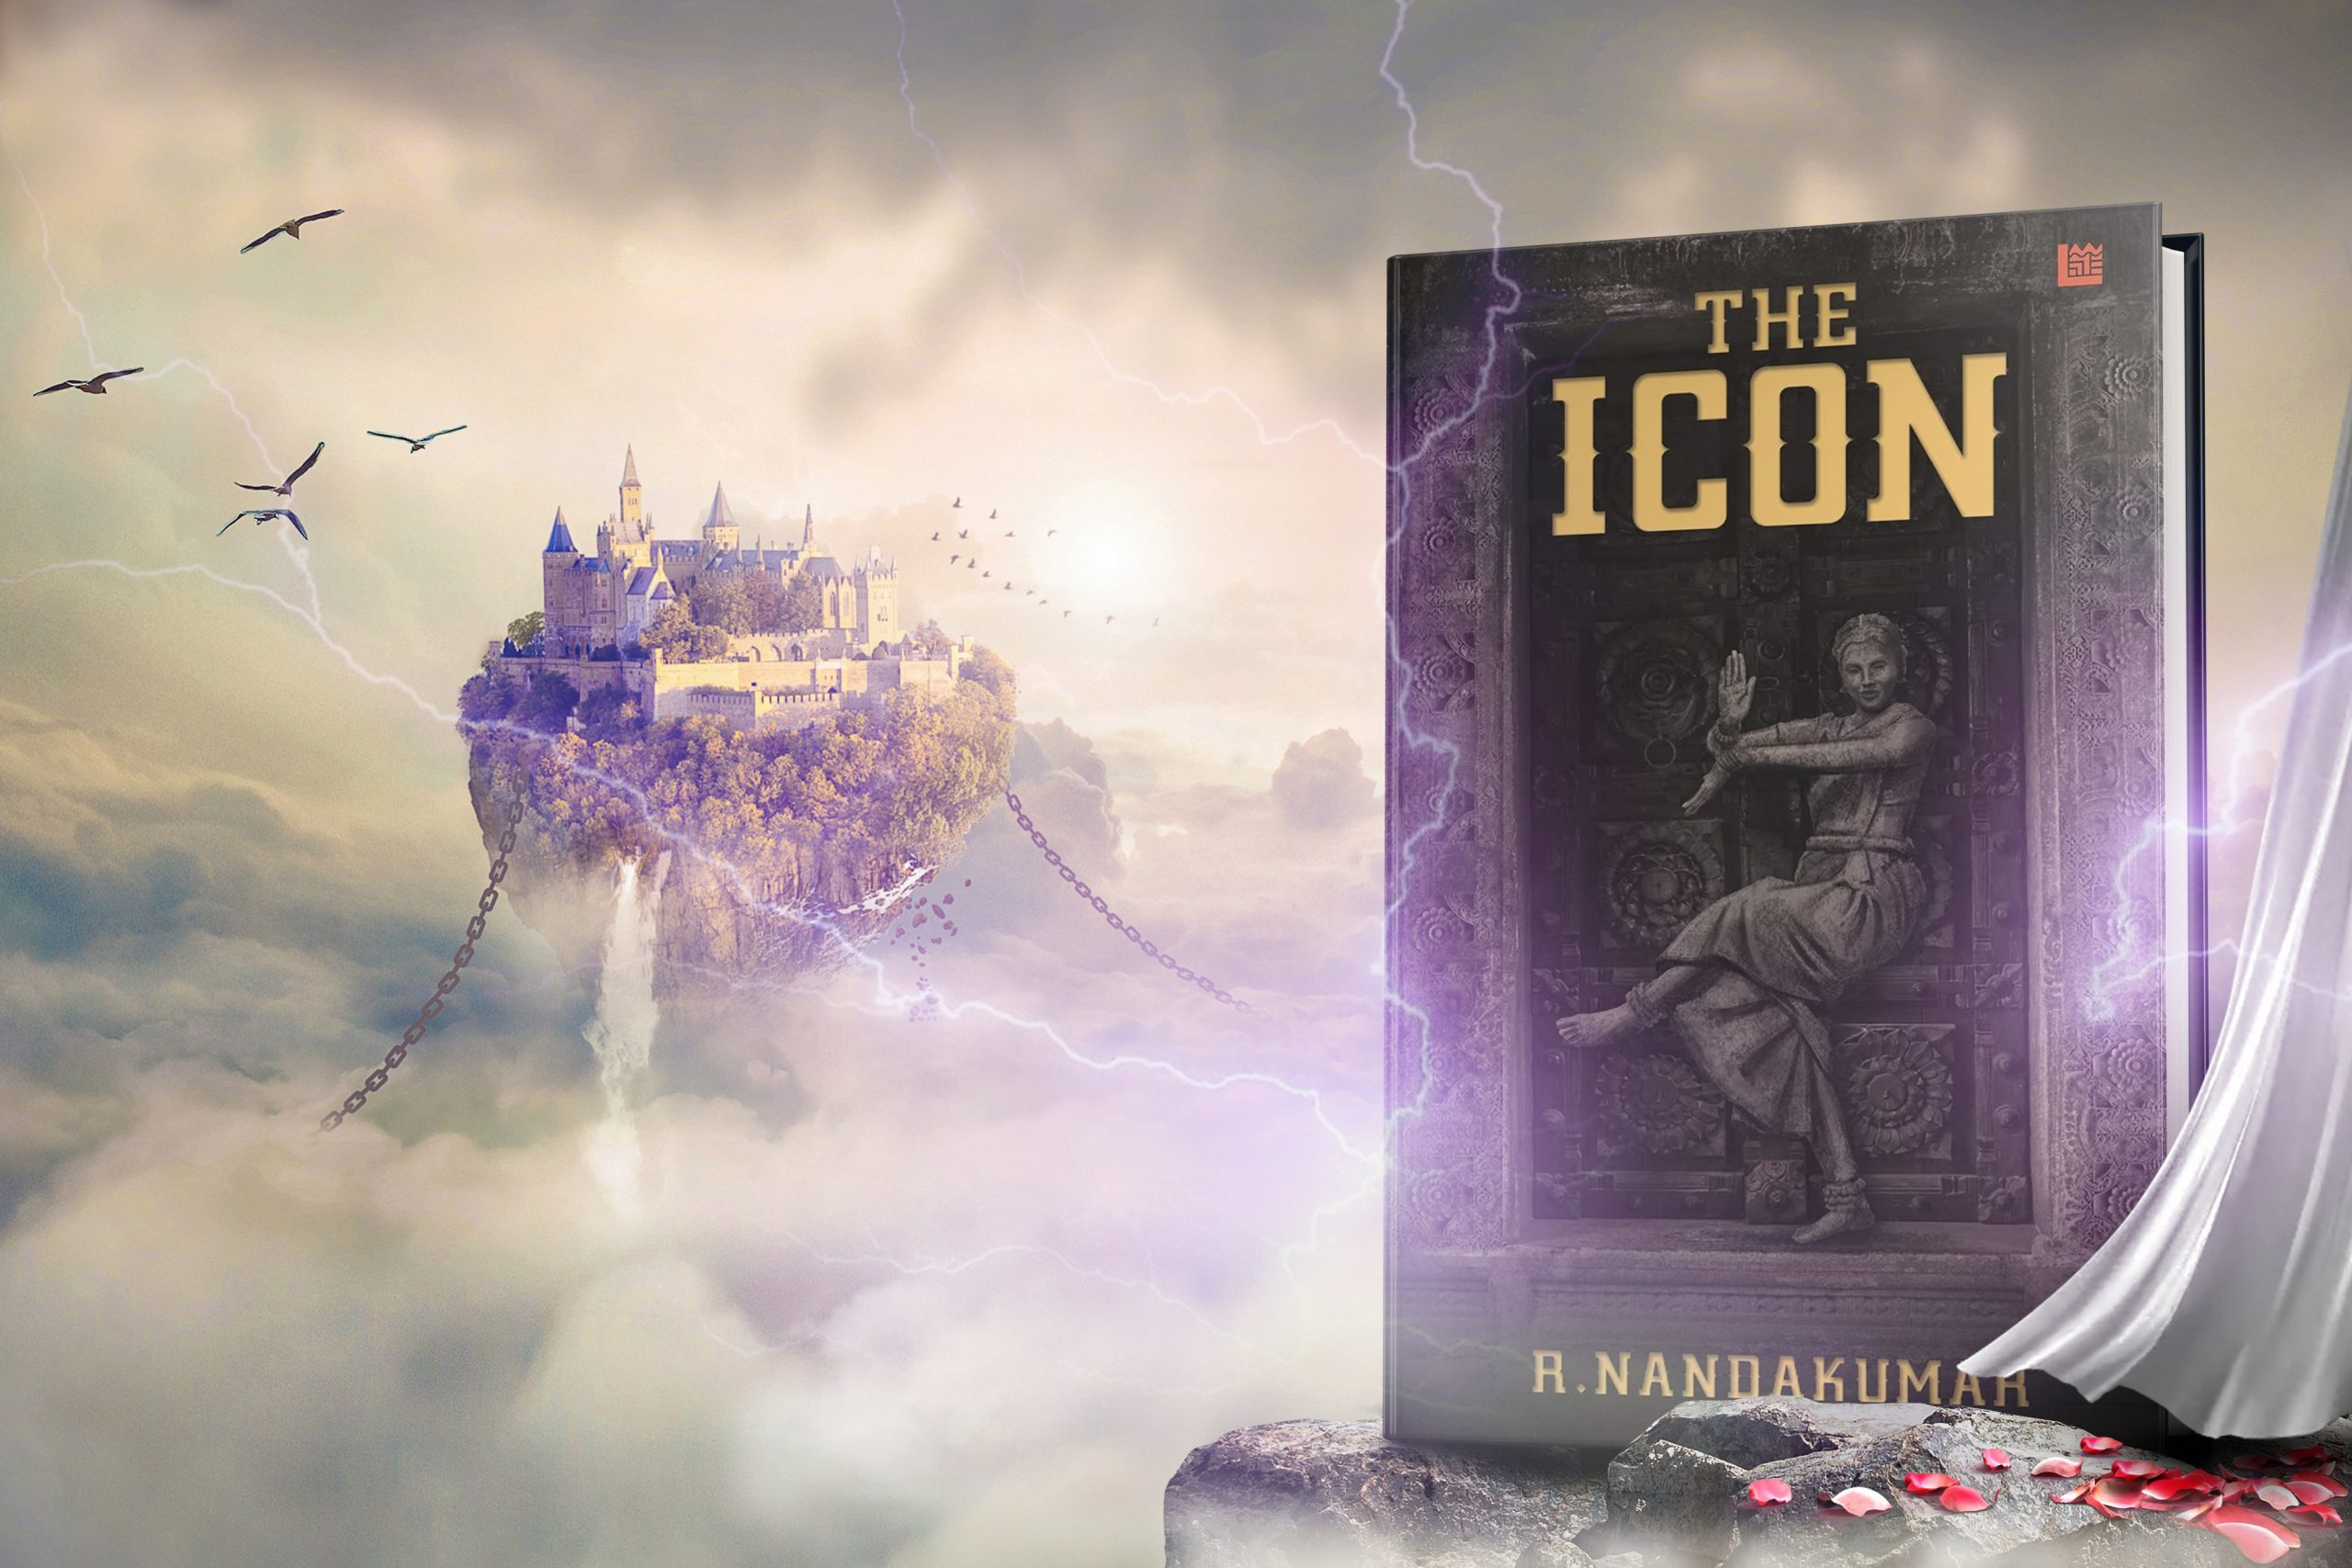 Book Review - The Icon by R. Nandakumar